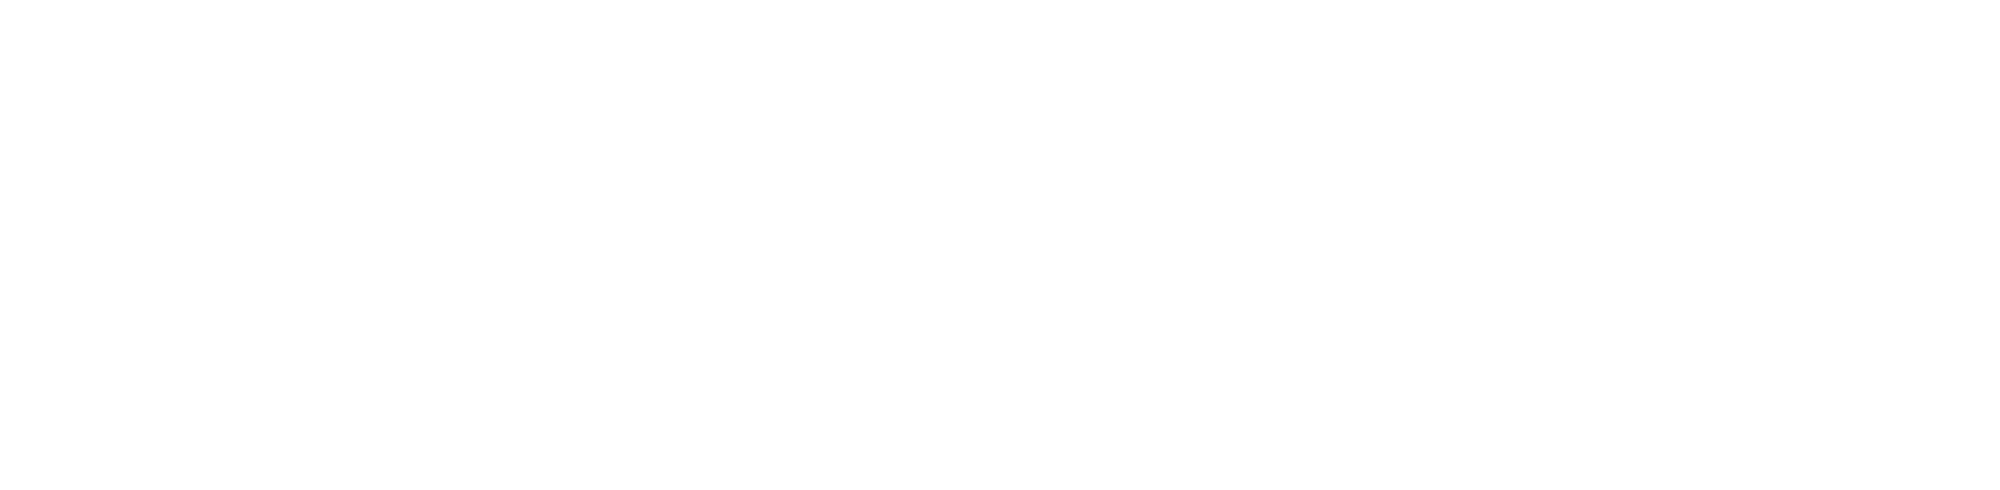 Berkshire-Hathaway-Home-Services-logo